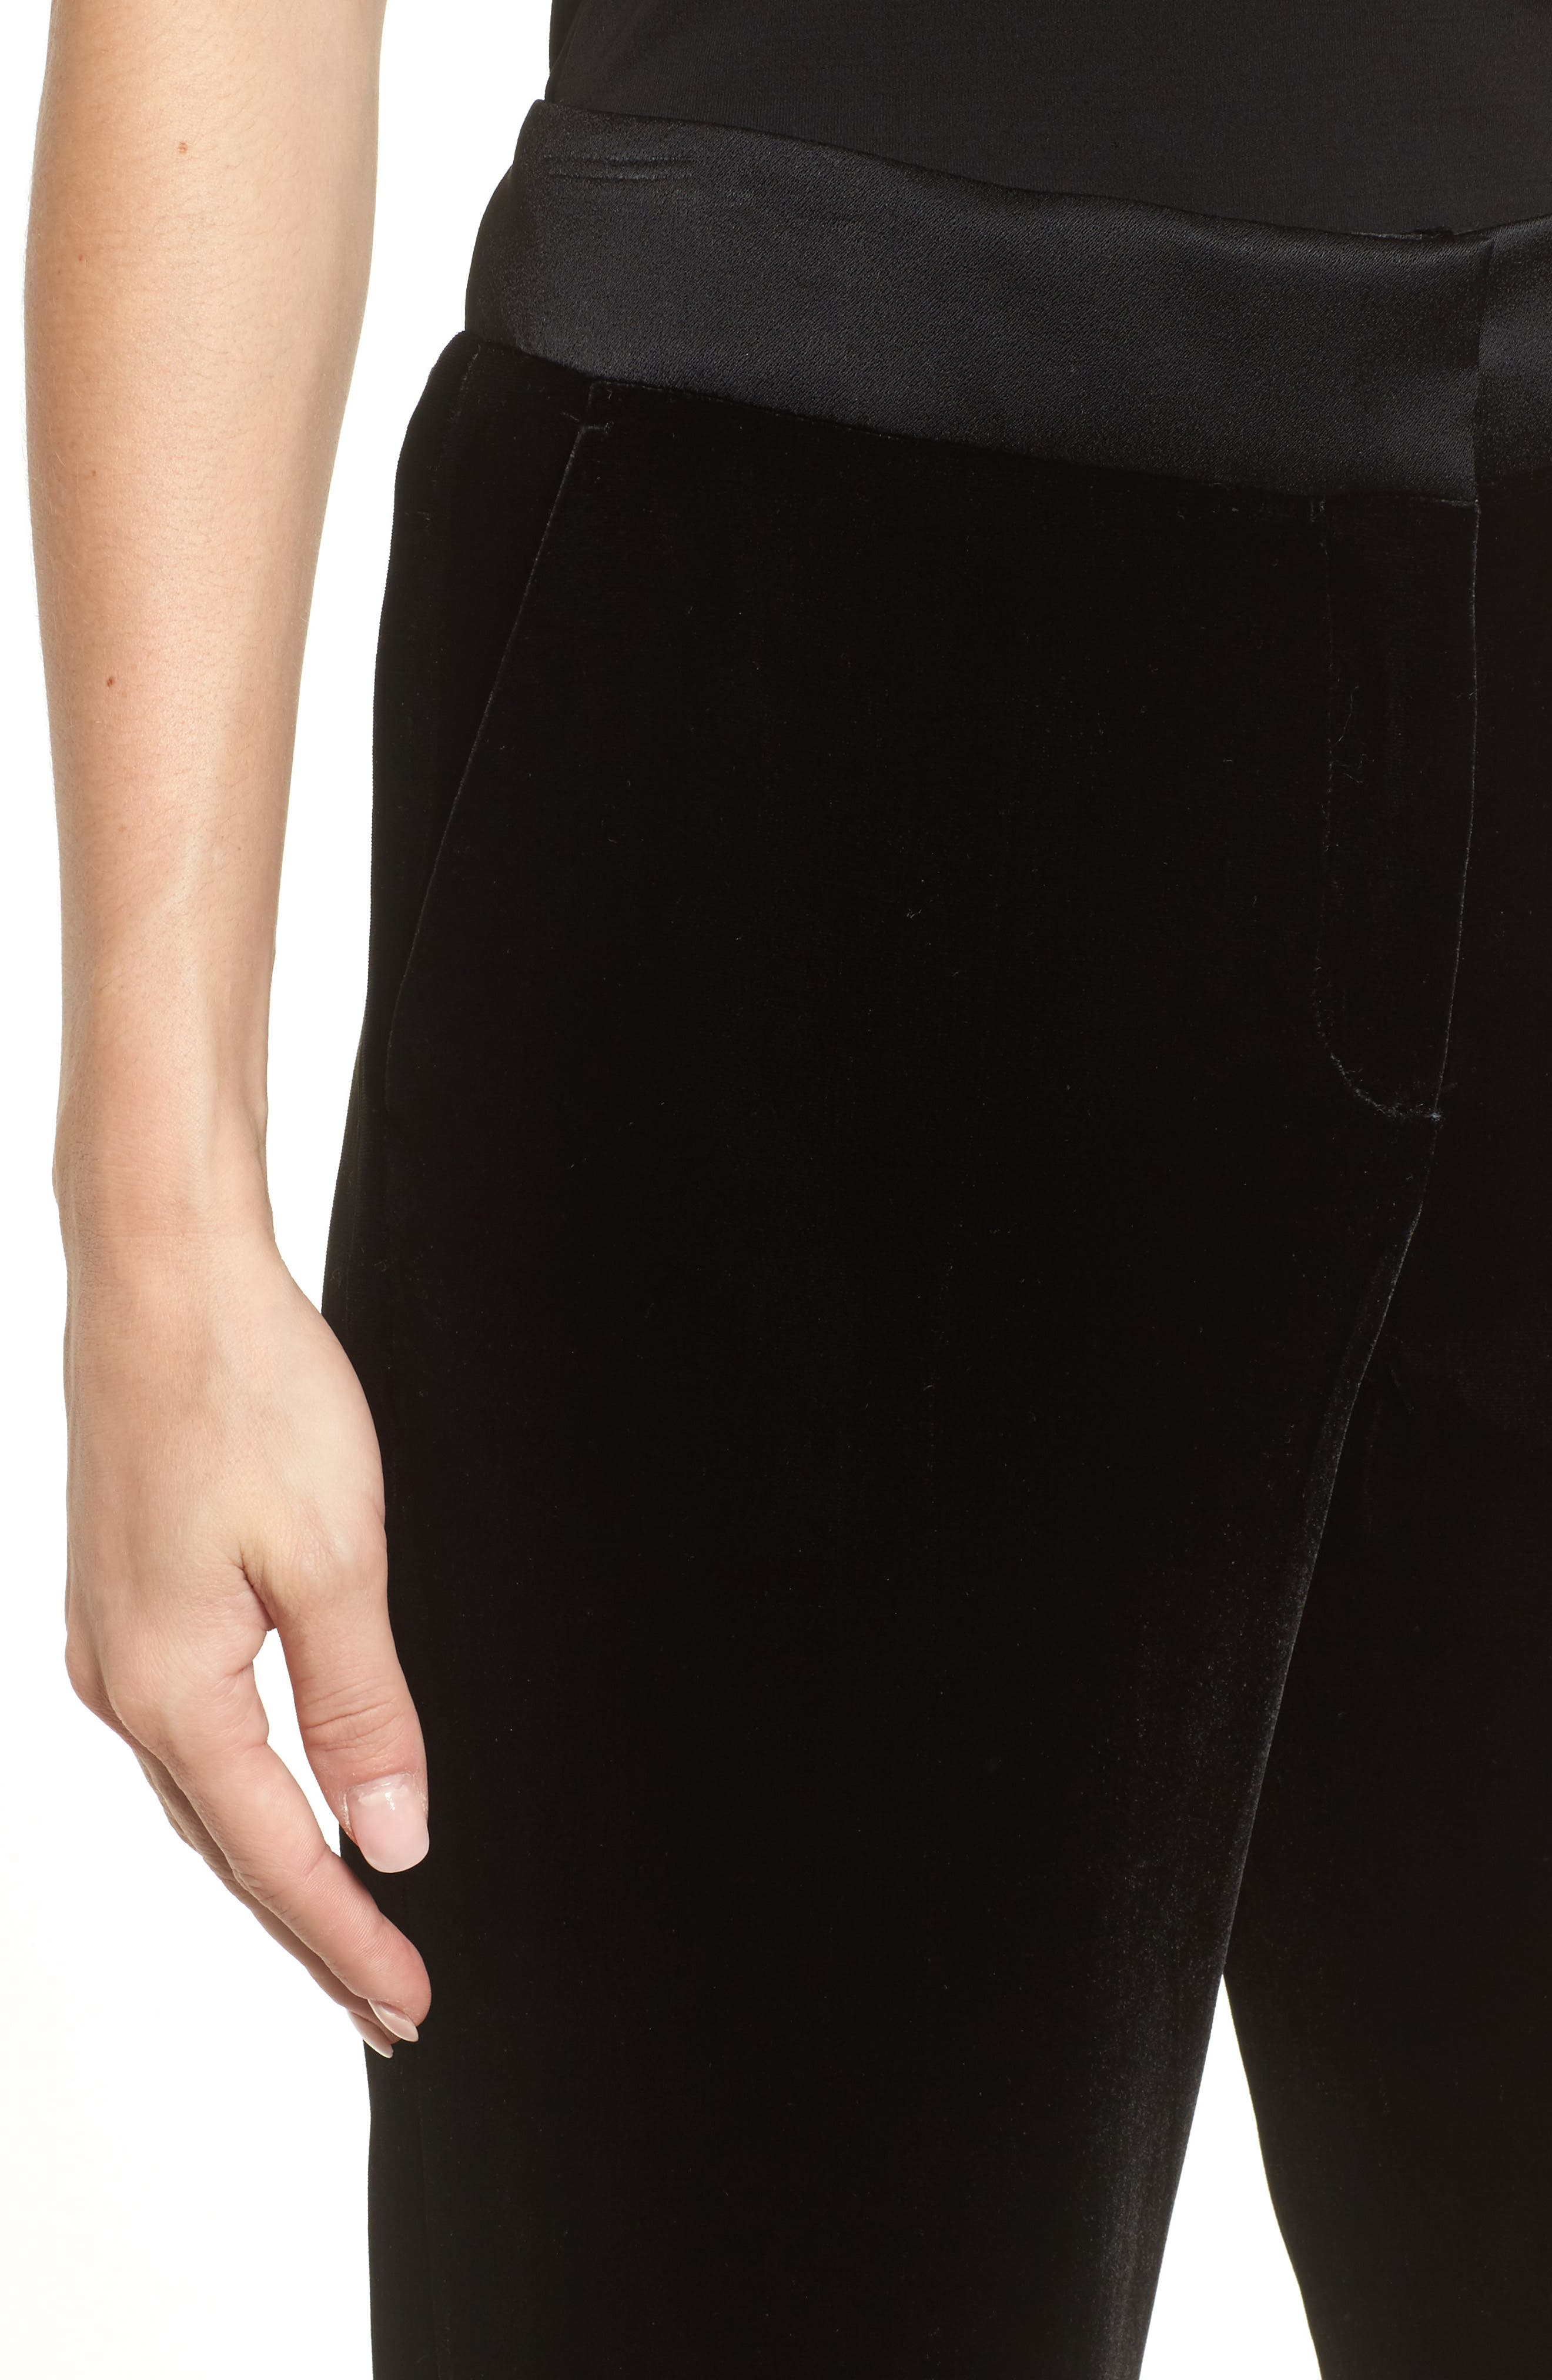 Tolesa Straight Leg Velvet Pants,                             Alternate thumbnail 4, color,                             001